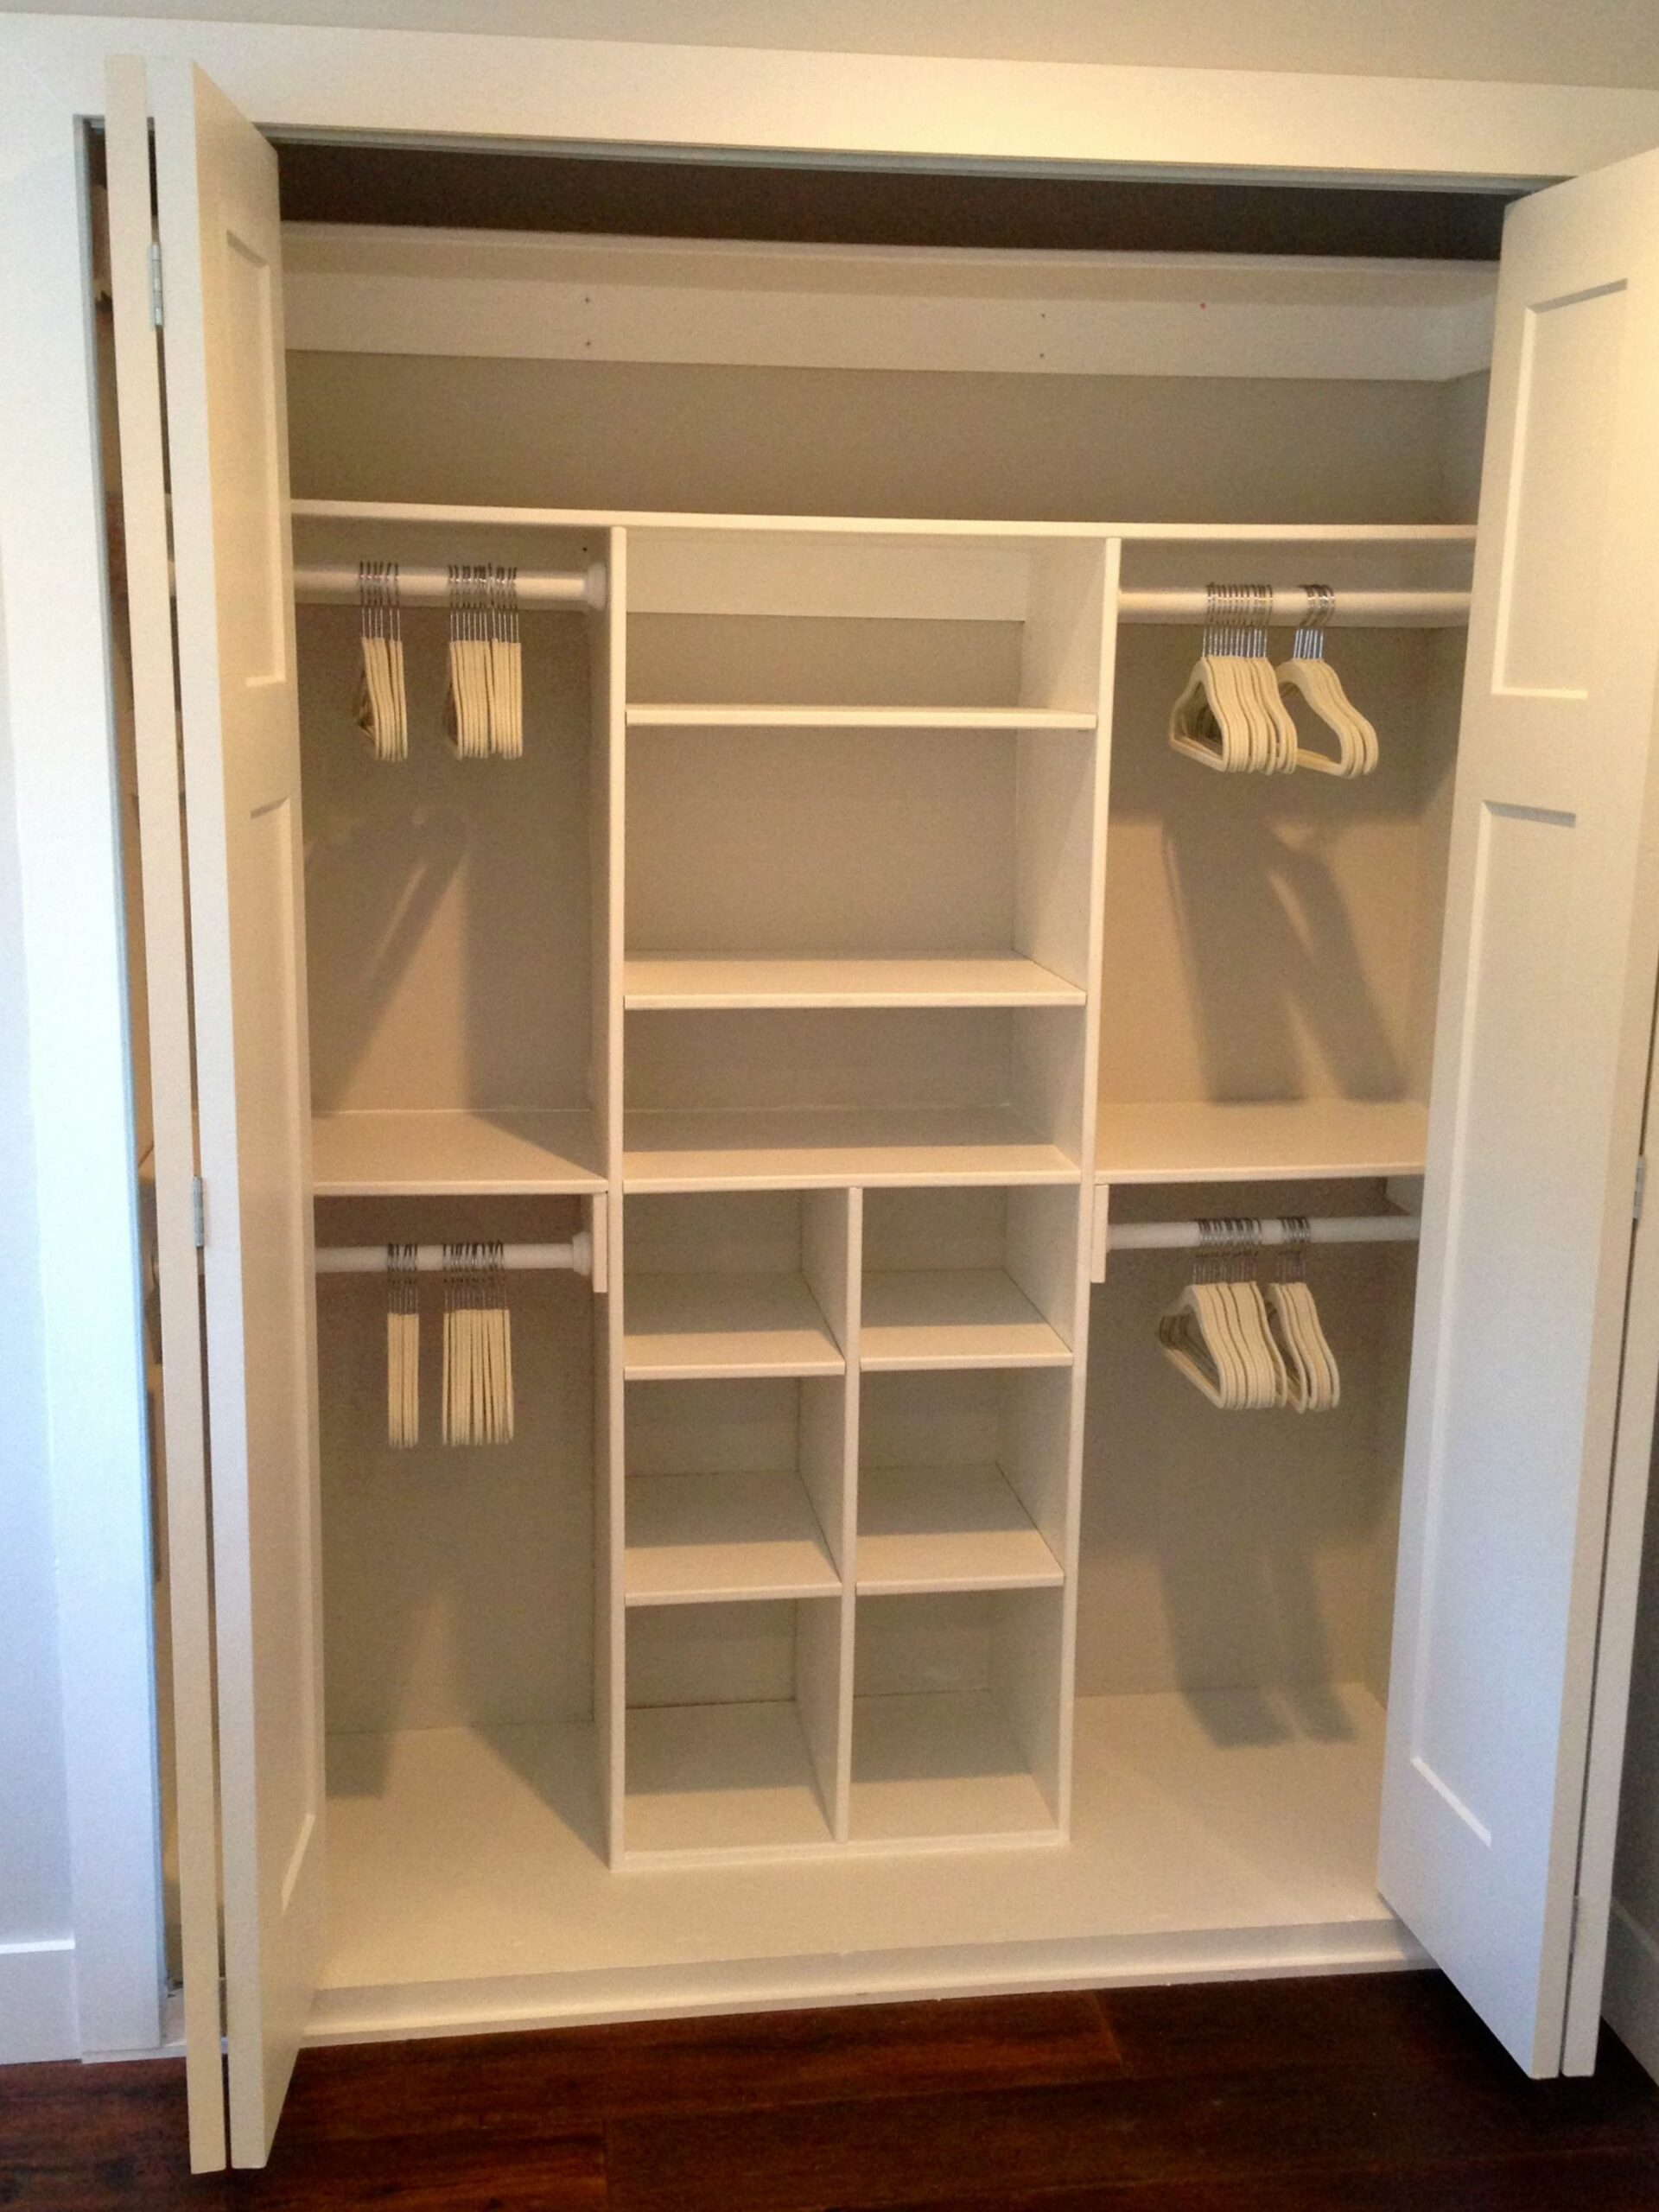 Just My Size Closet | Do It Yourself Home Projects from Ana White ..